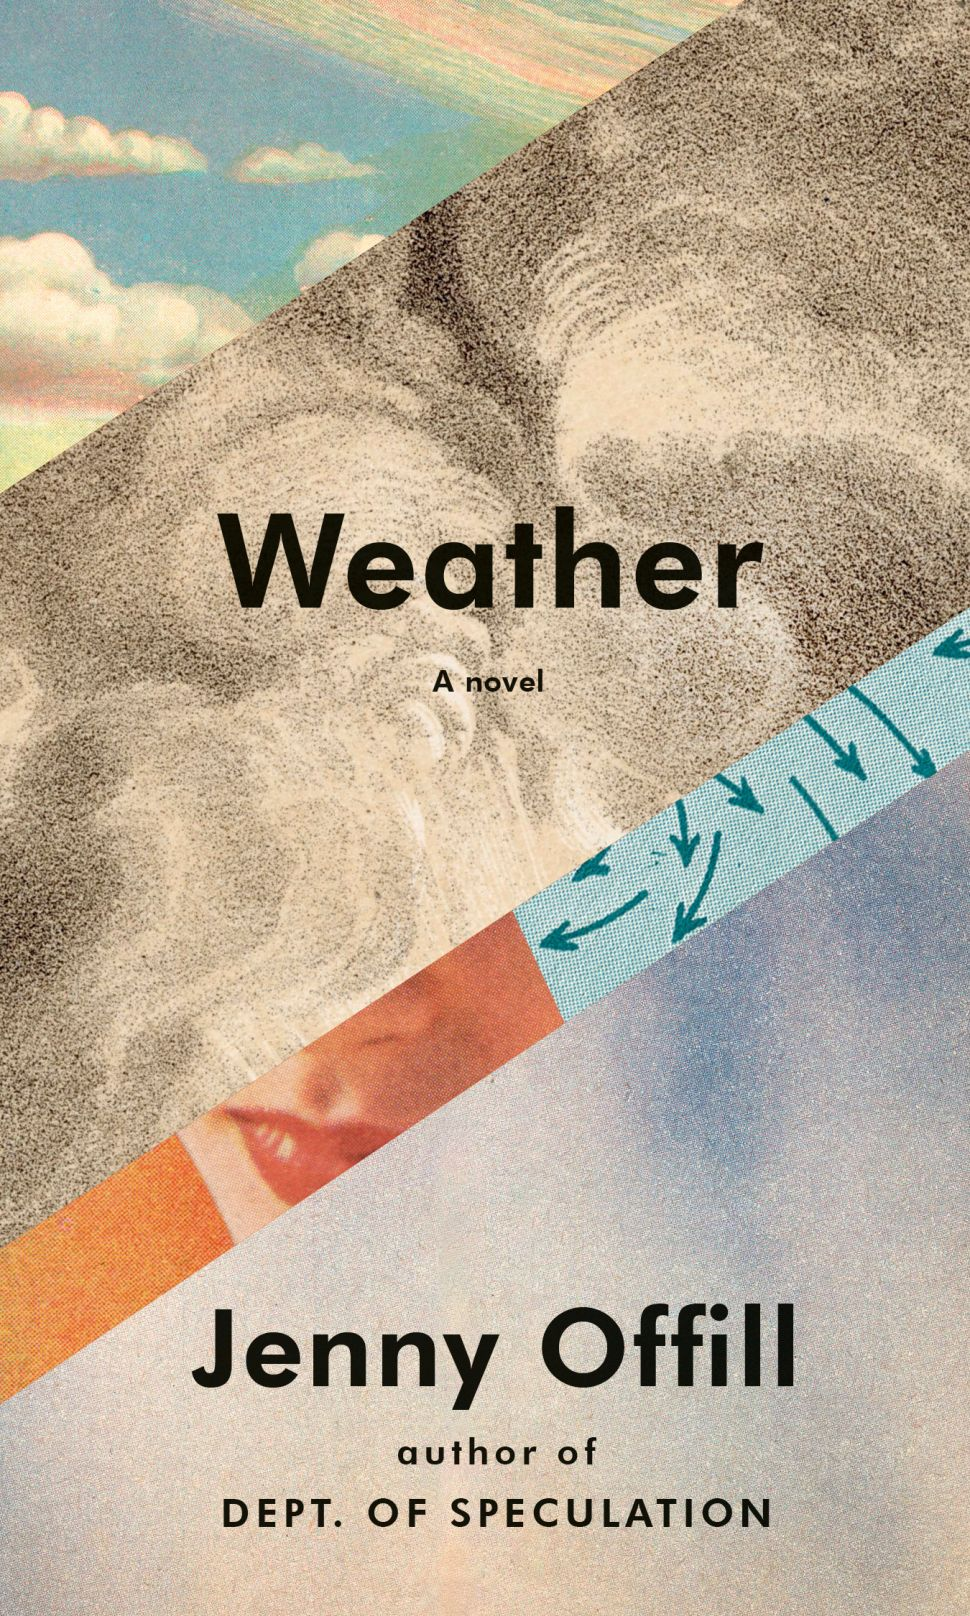 Jenny Offill on How 'Weather' Mirrors Her Own Struggle and the Book She Abandoned